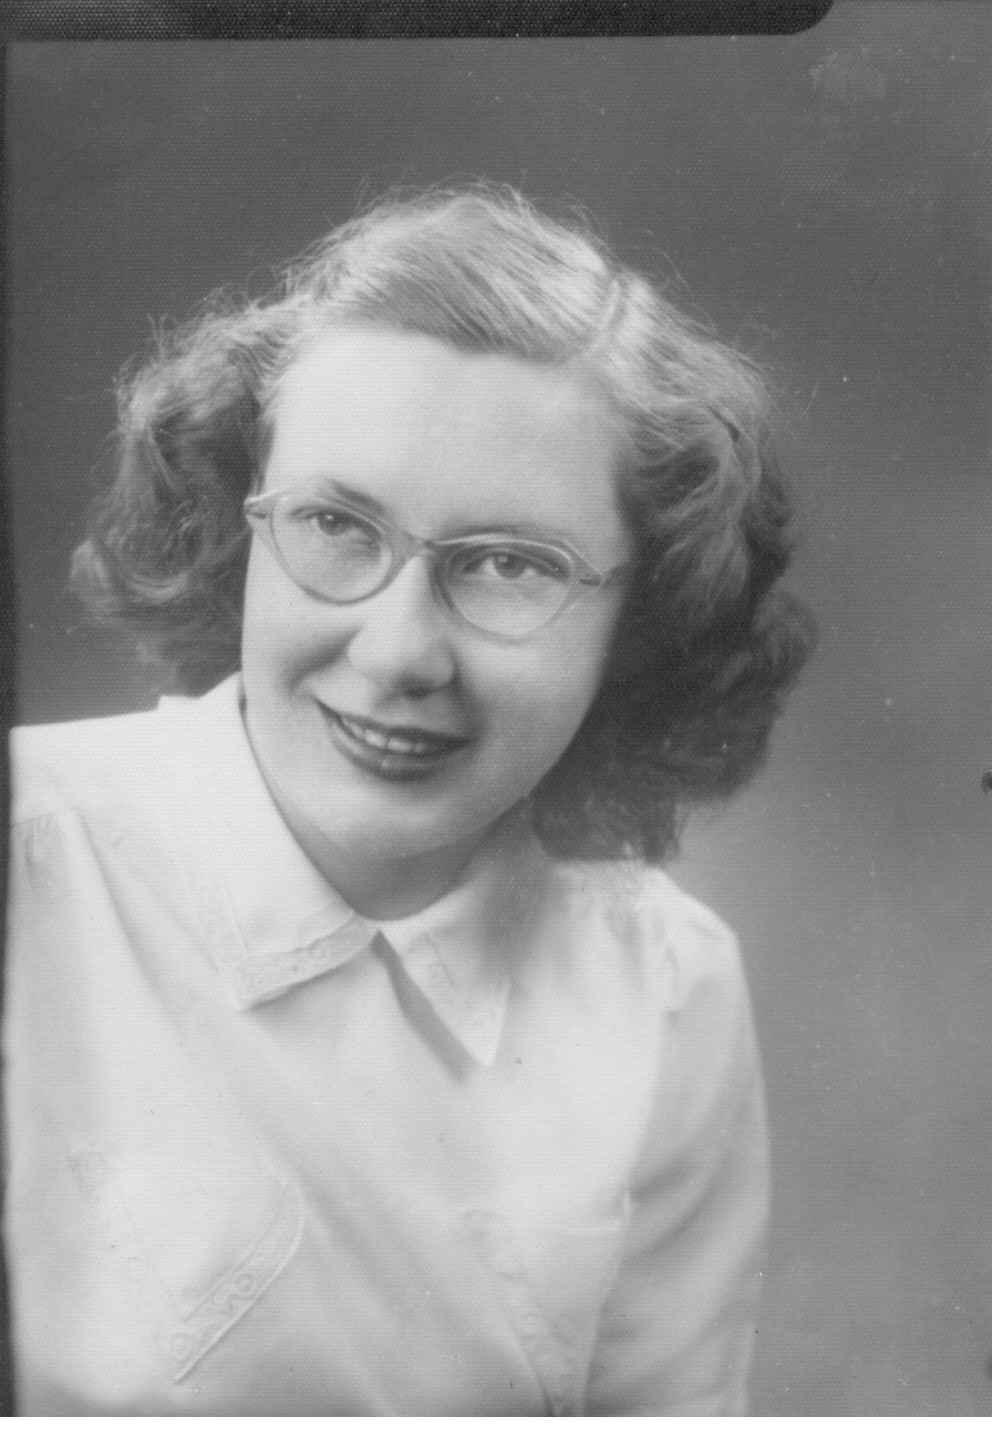 Mary Anne Durbin as a senior in high school